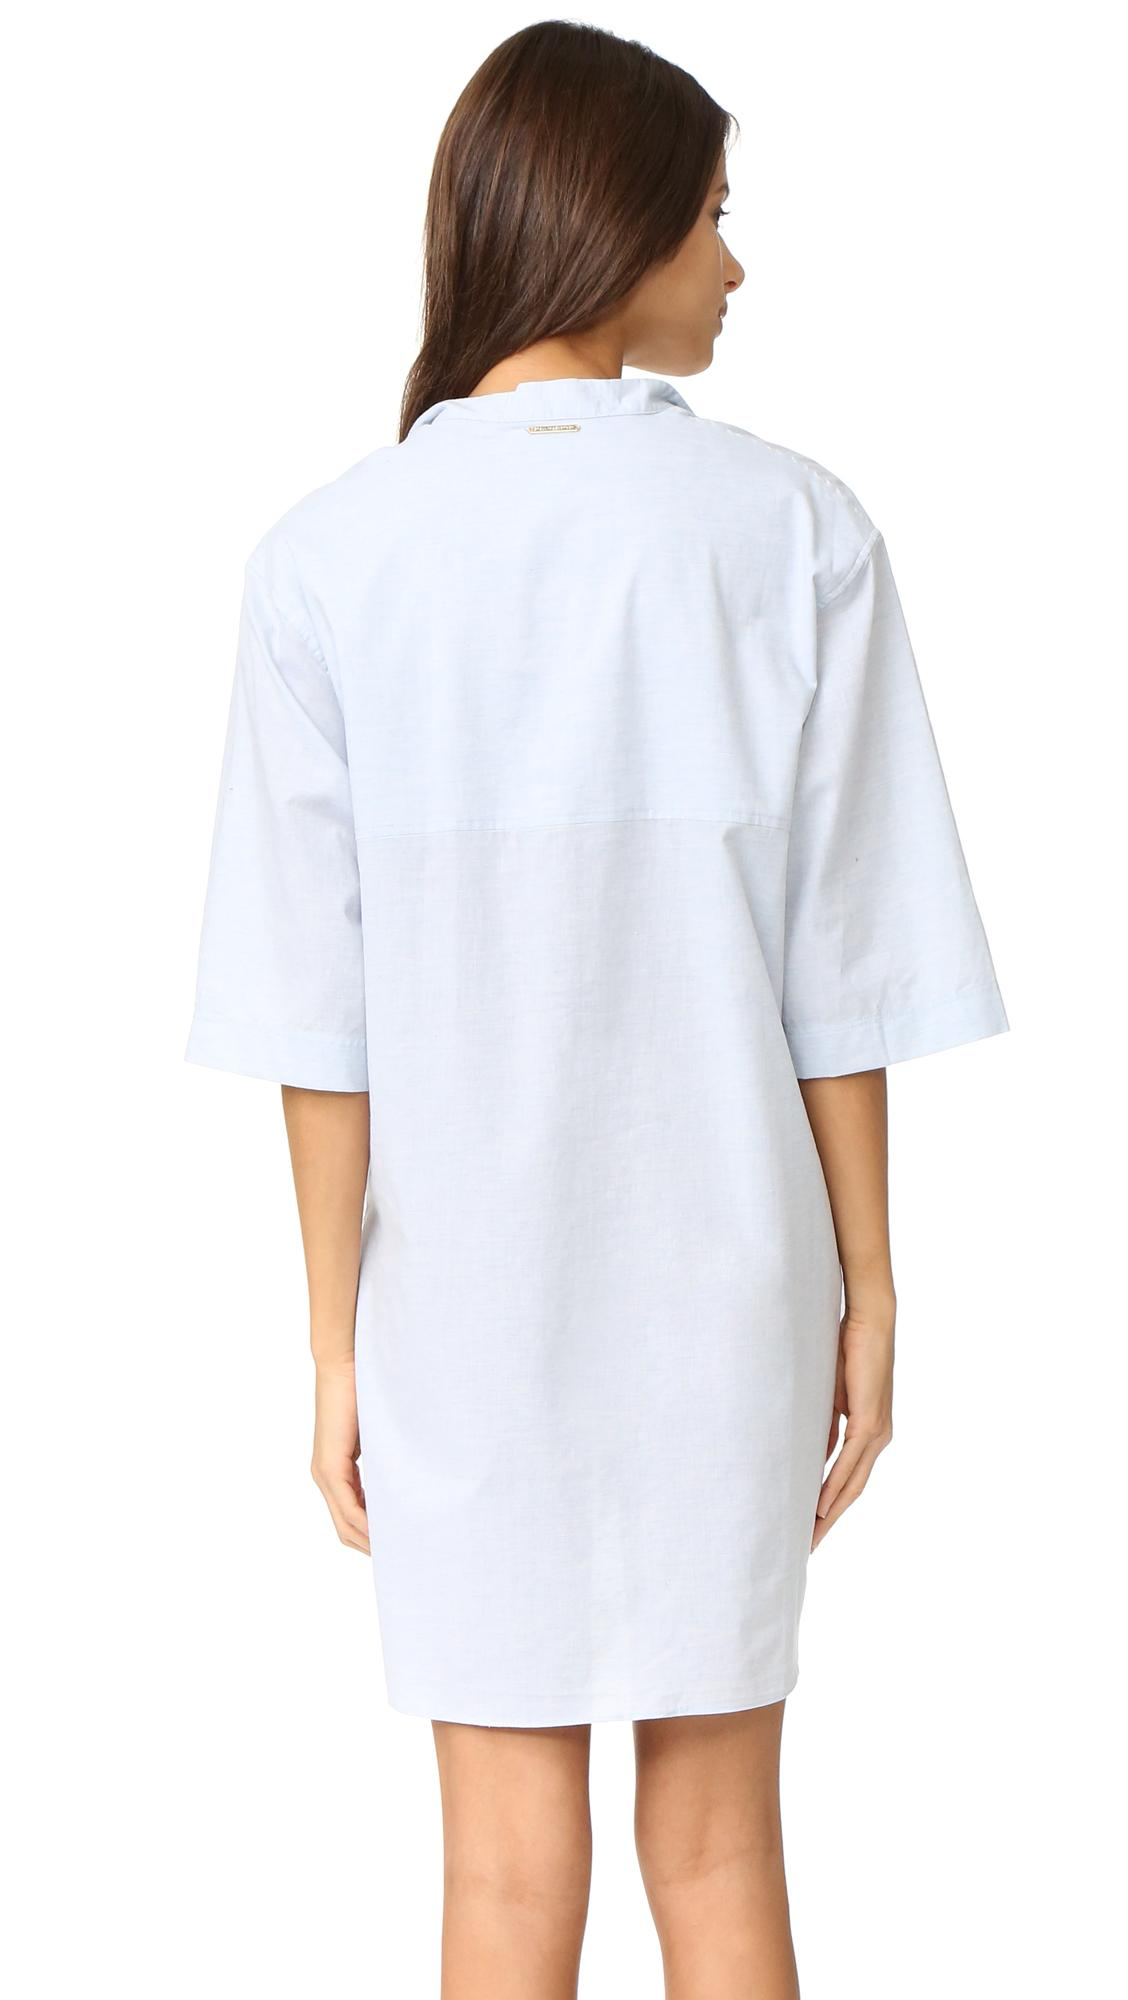 Lyst - Stella mccartney Cover Up in Blue